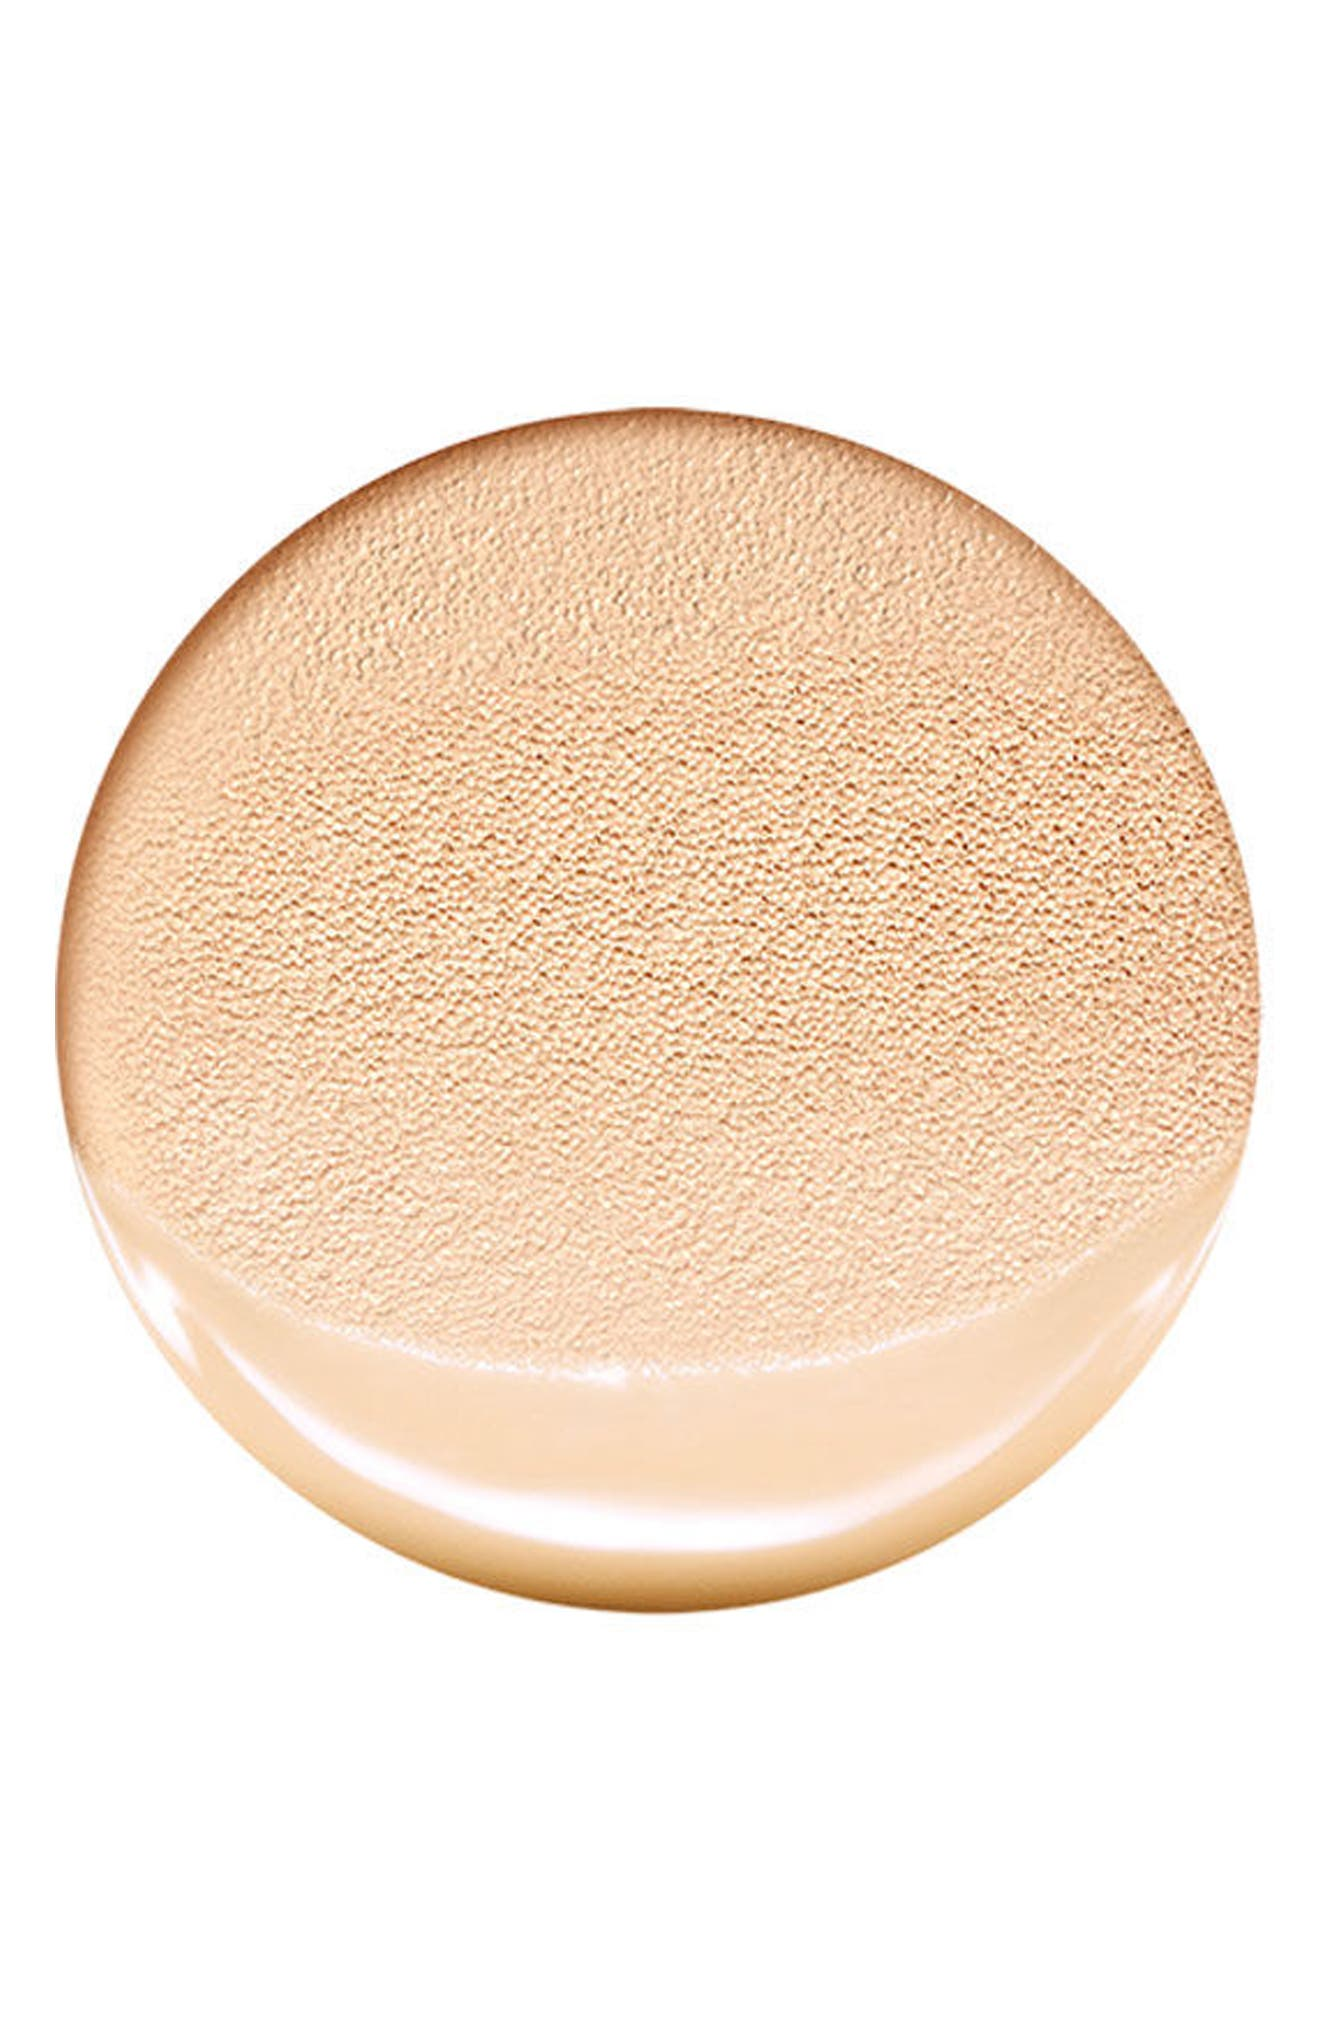 Alternate Image 2  - AMOREPACIFIC 'Color Control' Cushion Compact Broad Spectrum SPF 50